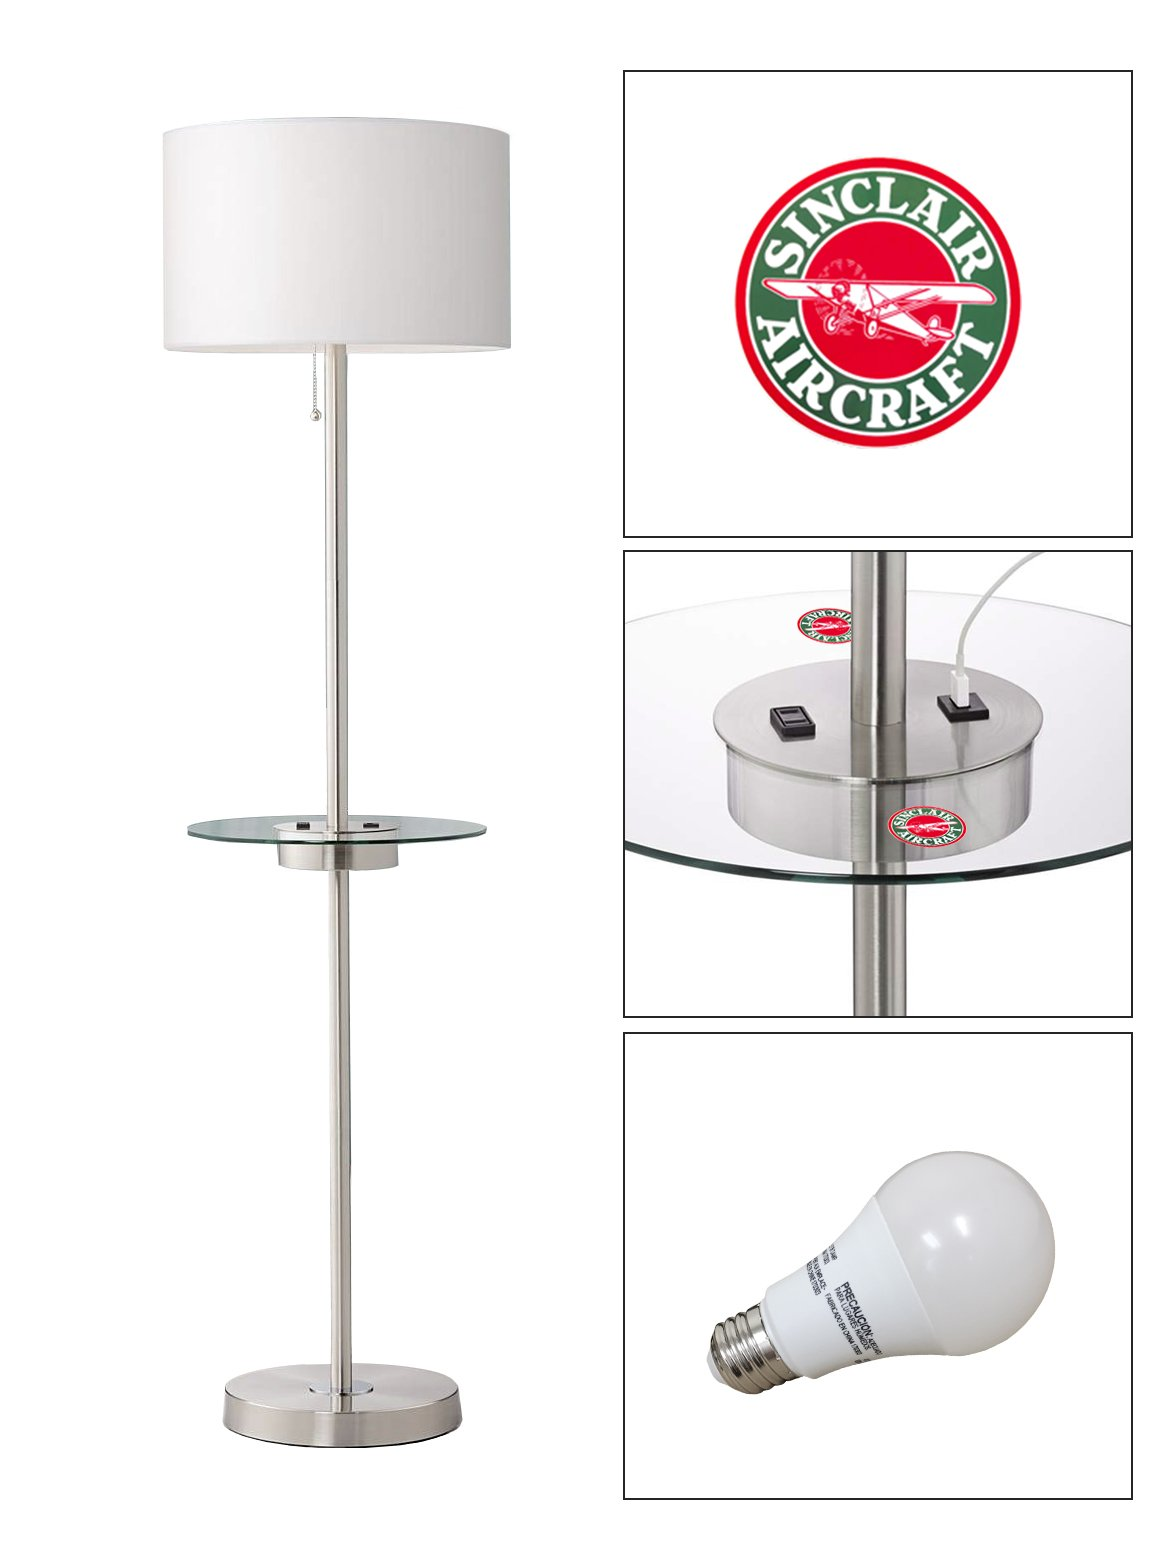 Satin Steel Floor Lamp with Table, USB, Electrical Outlet Featuring Your Favorite Vintage Gas Themed Logo - FREE LED BULB INCLUDED (Sinclair Aircraft)